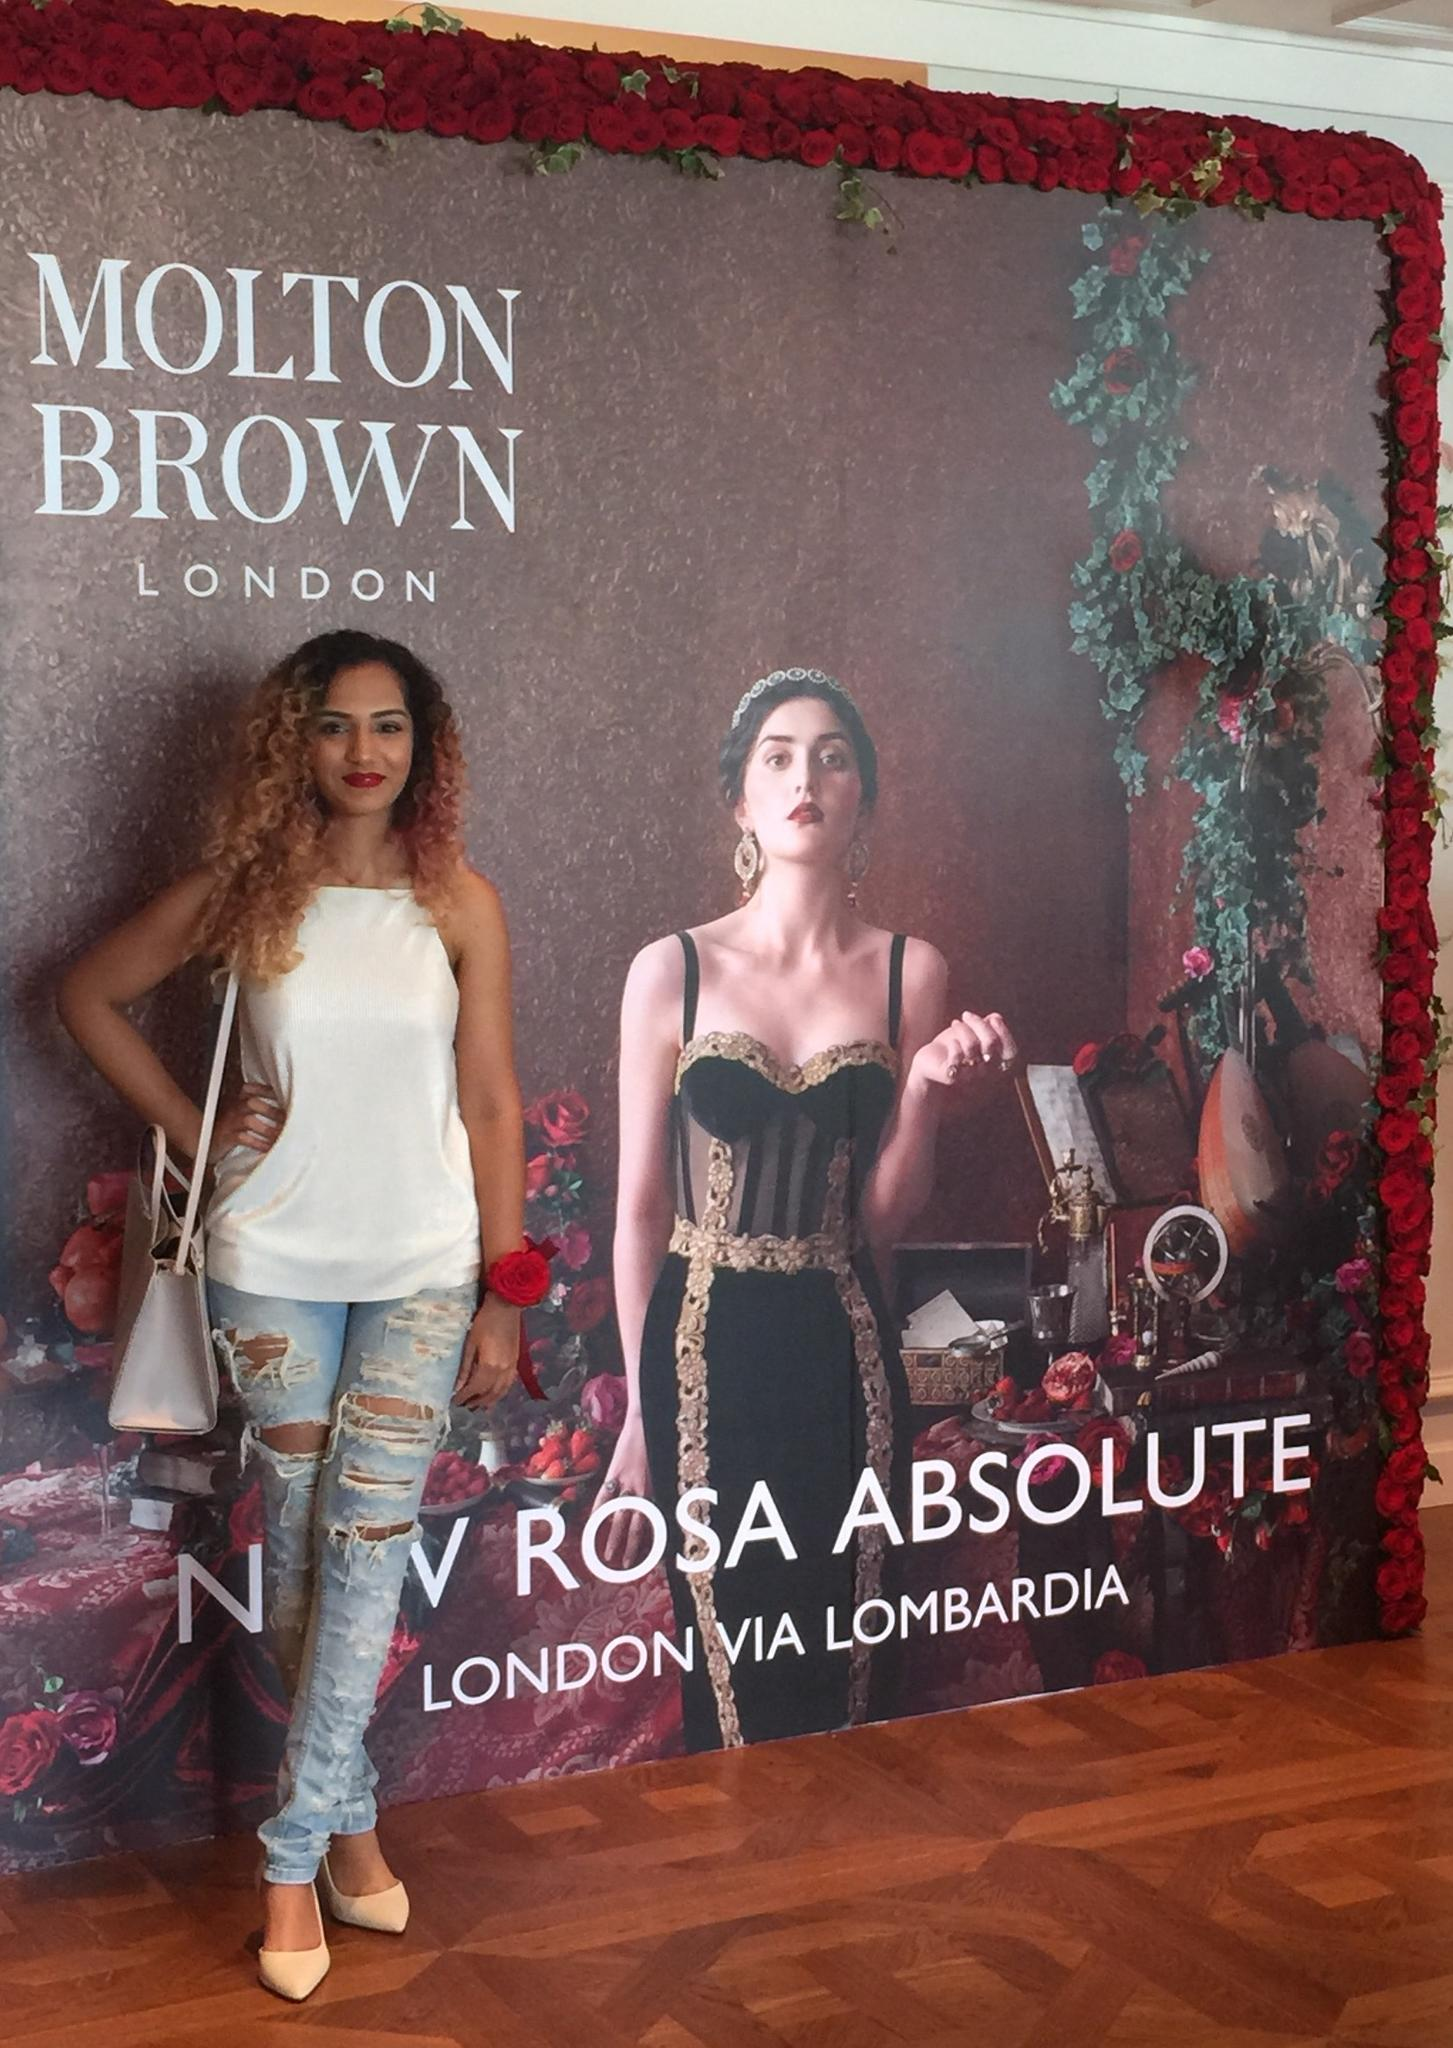 Molton Brown presents the NEW Rosa Absolute collection